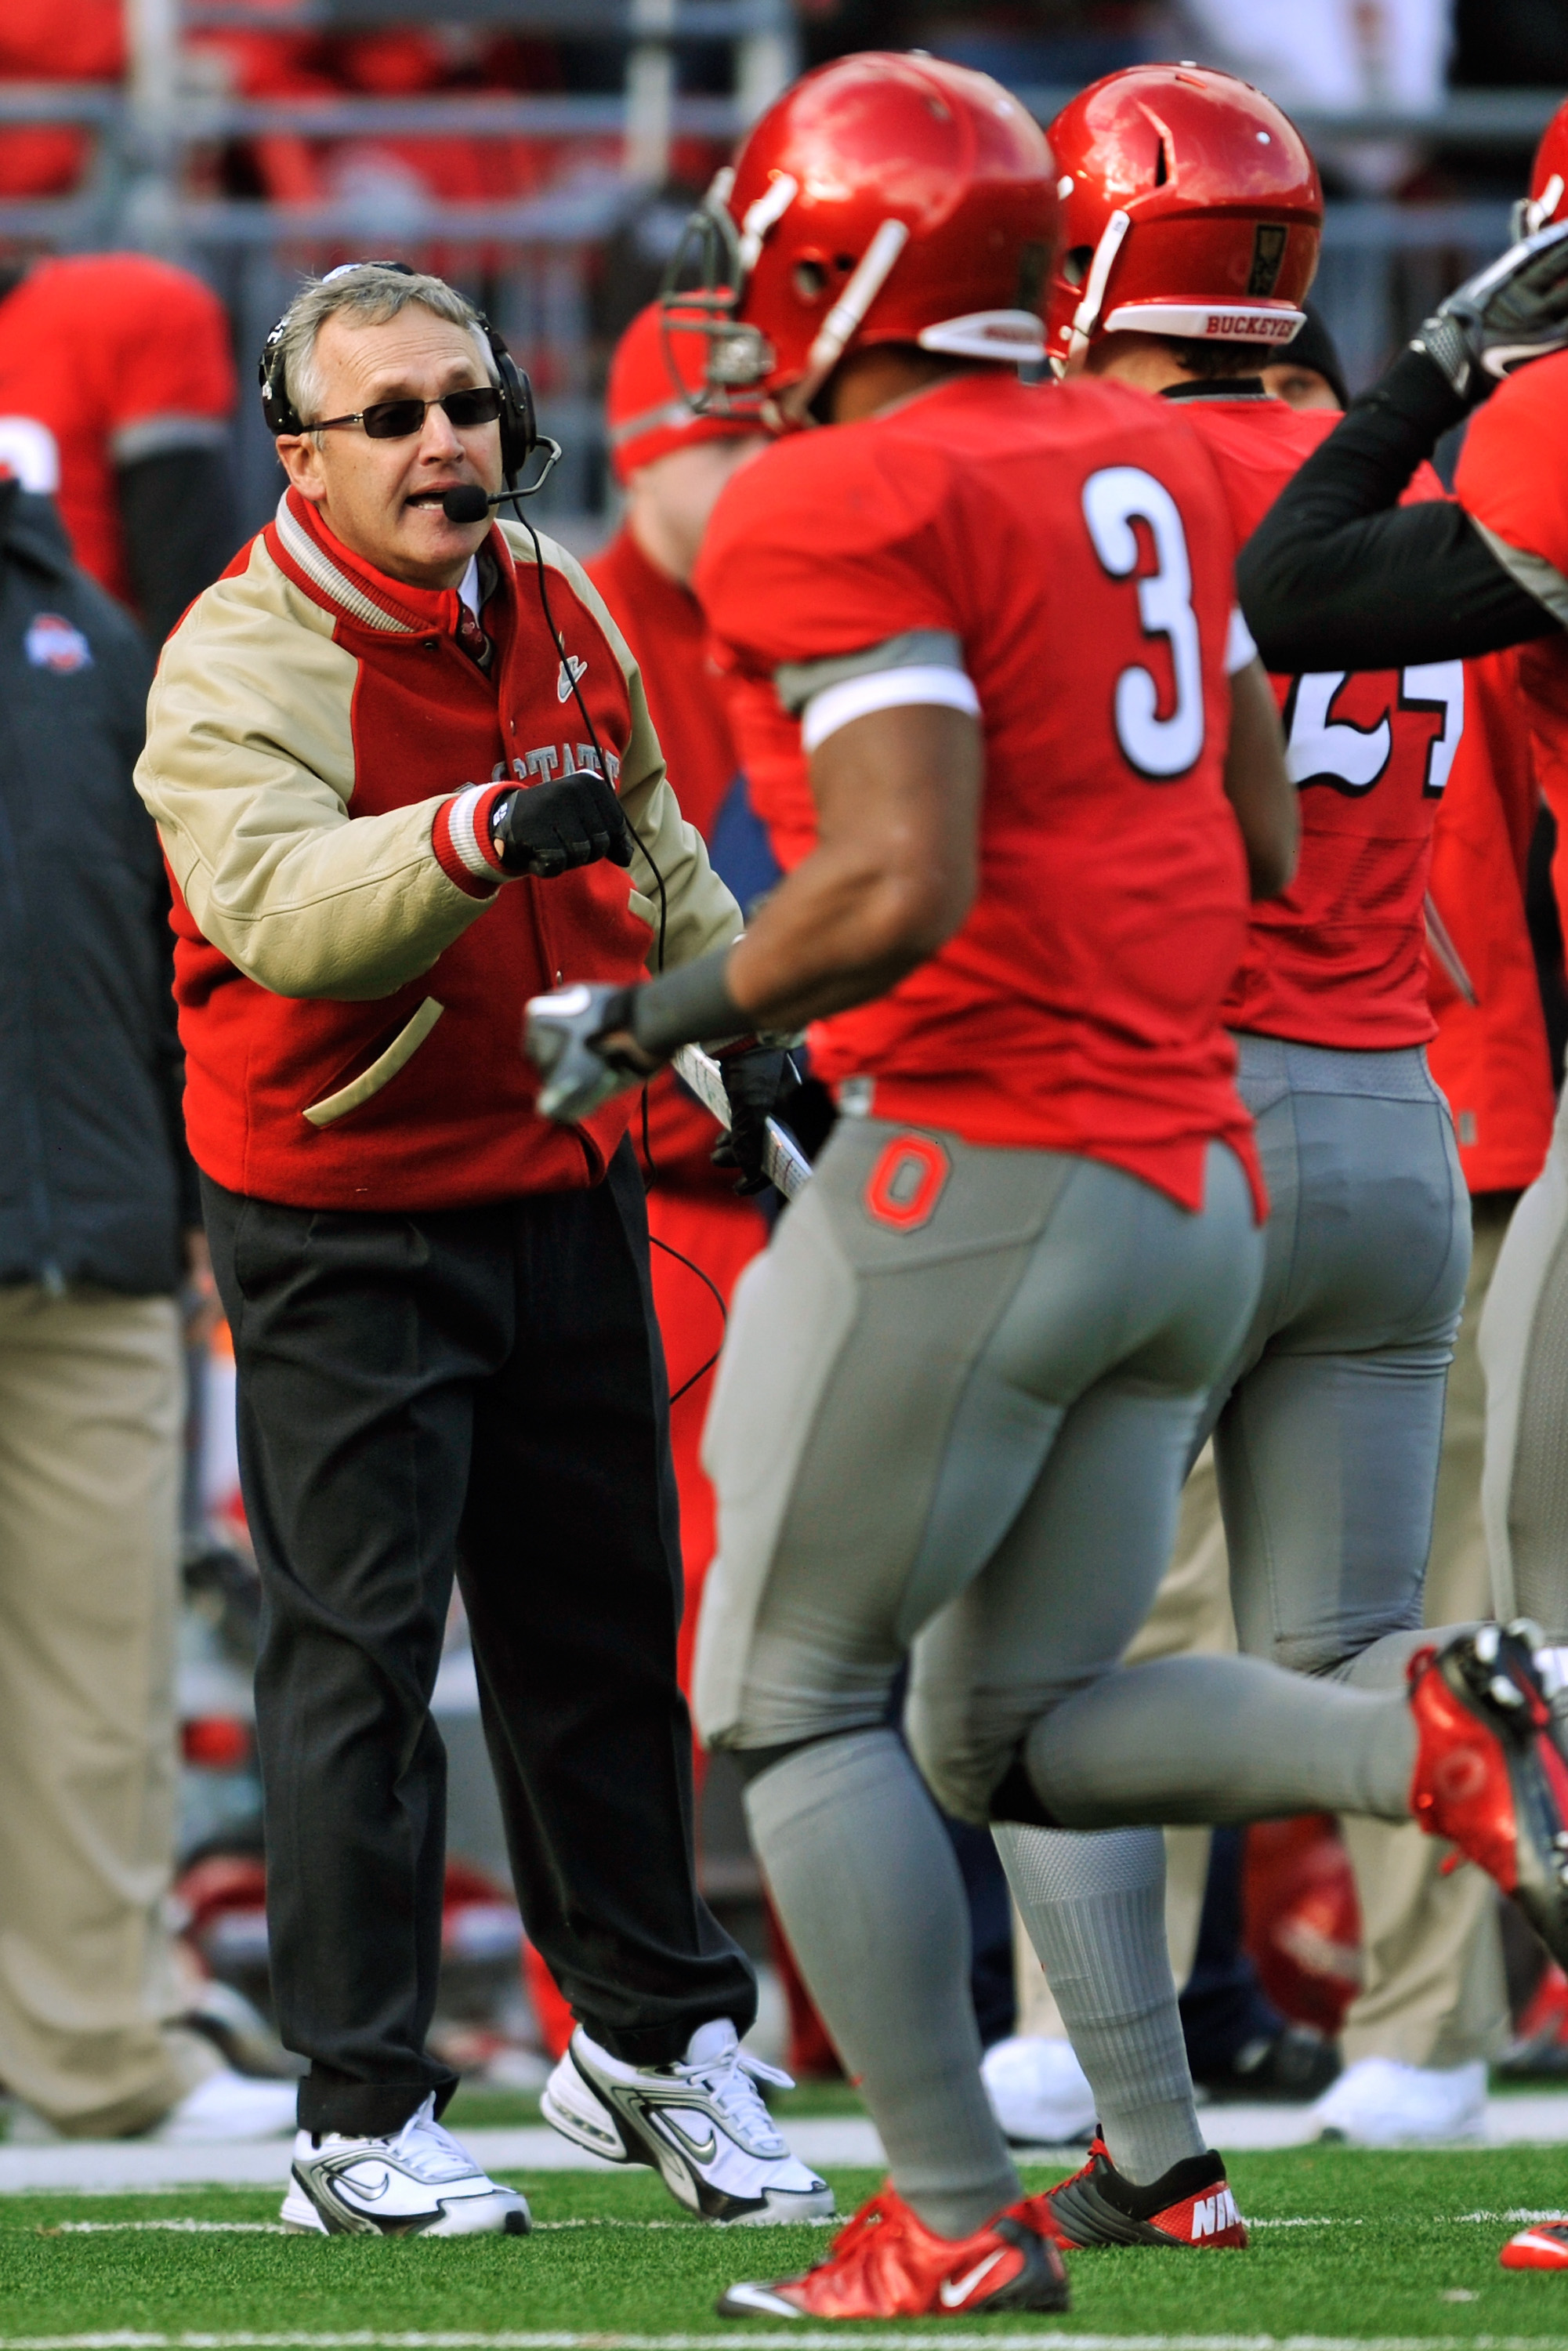 COLUMBUS, OH - NOVEMBER 27:  Head Coach Jim Tressel of the Ohio State Buckeyes fist bumps his players coming off the field during a game against the Michigan Wolverines at Ohio Stadium on November 27, 2010 in Columbus, Ohio. Ohio State defeated Michigan 3